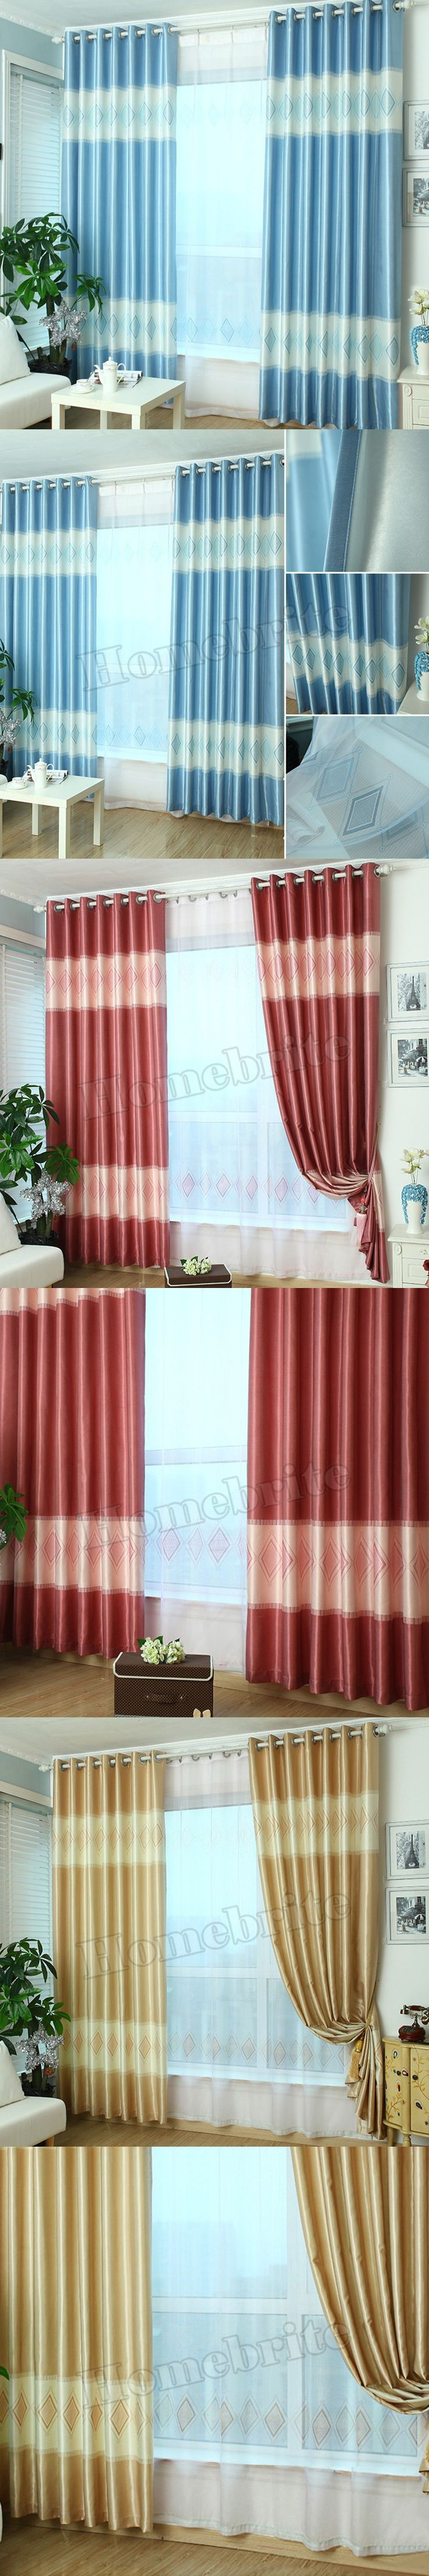 Simplife Tulle Window Mediterranean Curtain Luxury Plaid Blackout Drape for Living Room Bedroom Decoration Free Shipping CL255 $20.27